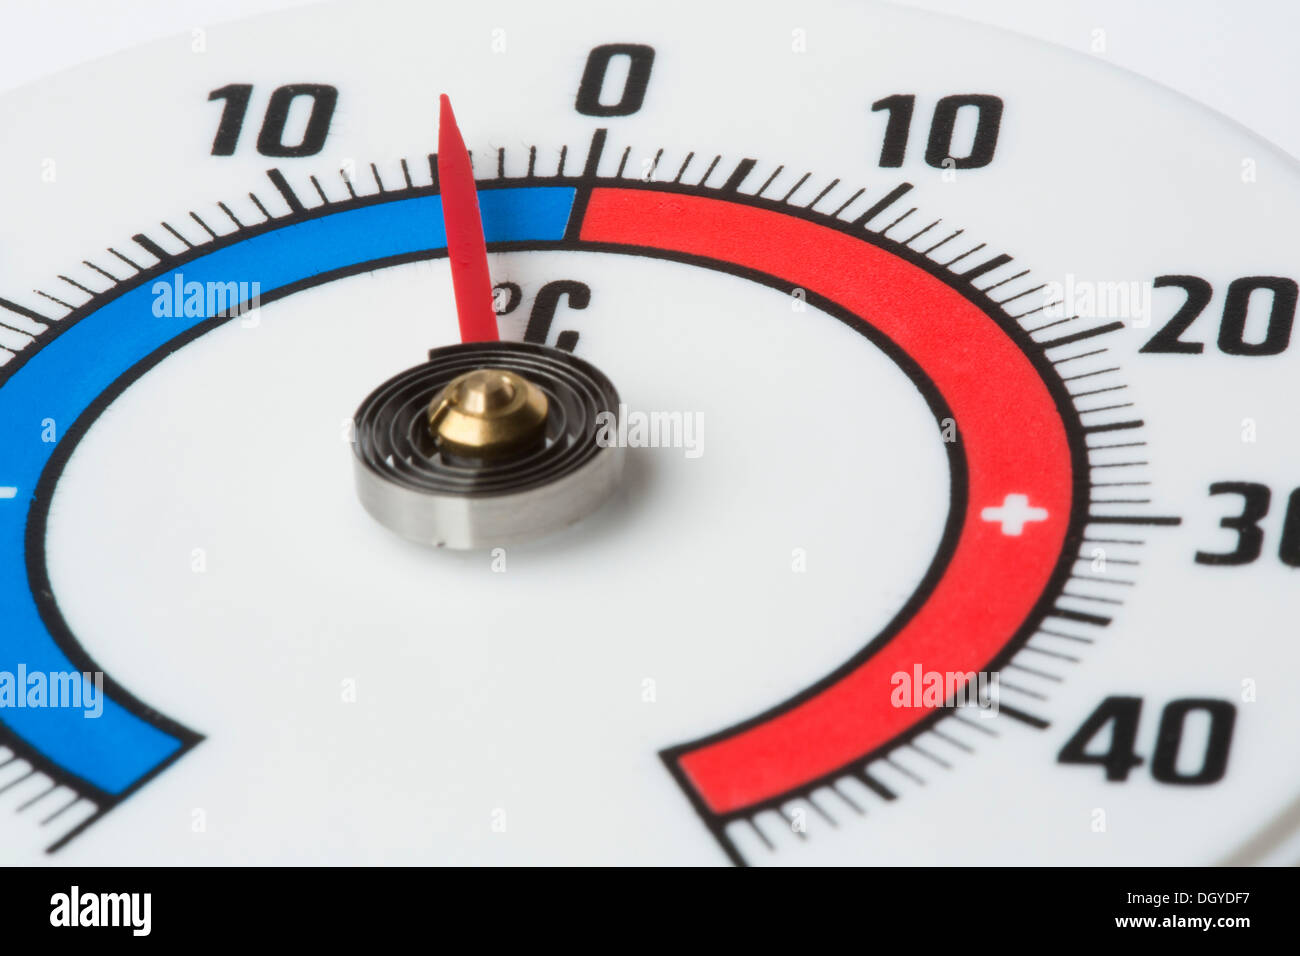 Extreme close up of a thermometer showing a temperature of minus 5 Celsius - Stock Image